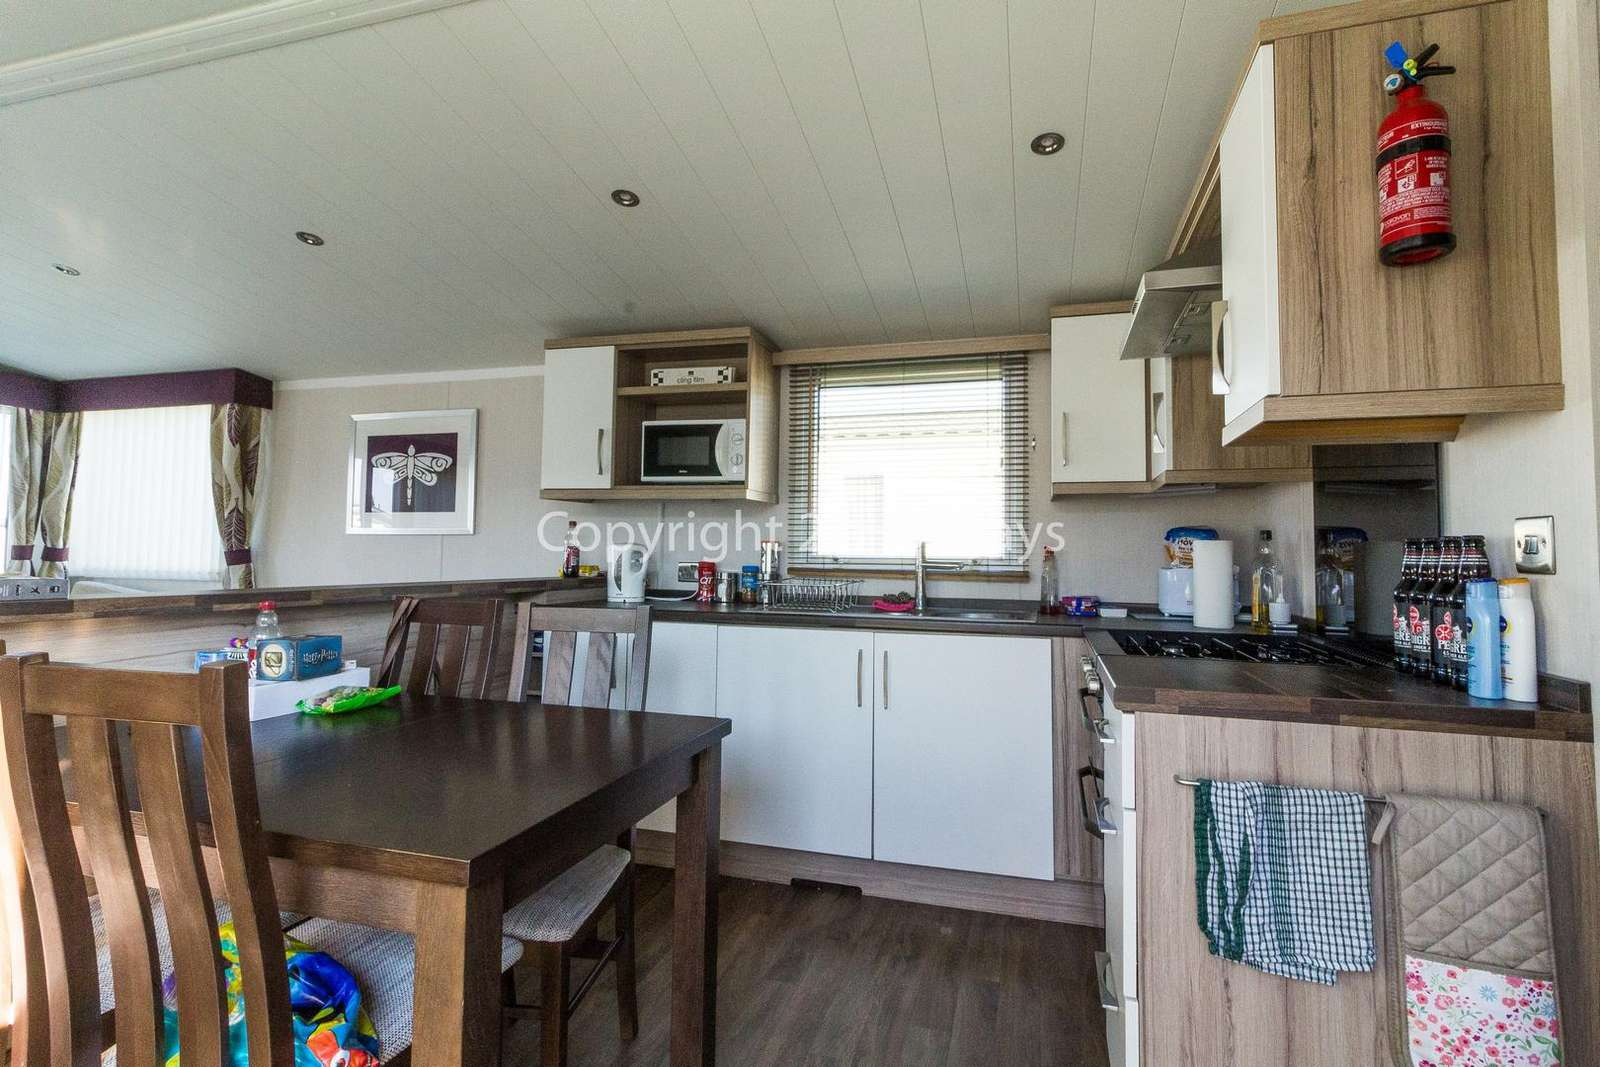 Come and stay in this private accommodation at Caister Haven Holiday Park